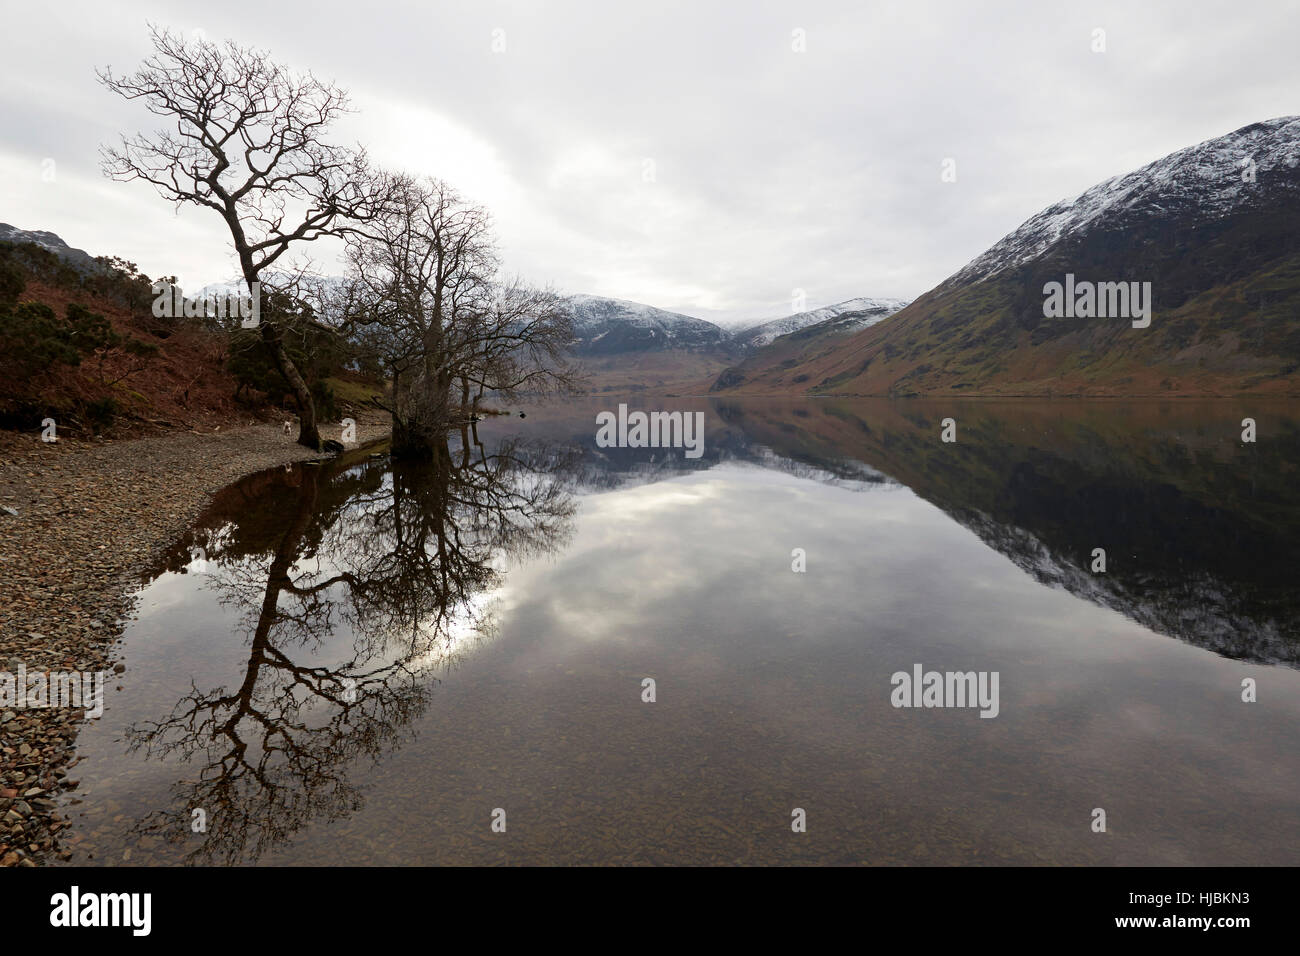 Snow capped mountains rocks and trees reflected in the calm surface of Crummock Water, Keswick, Cumbria, Lake District, - Stock Image